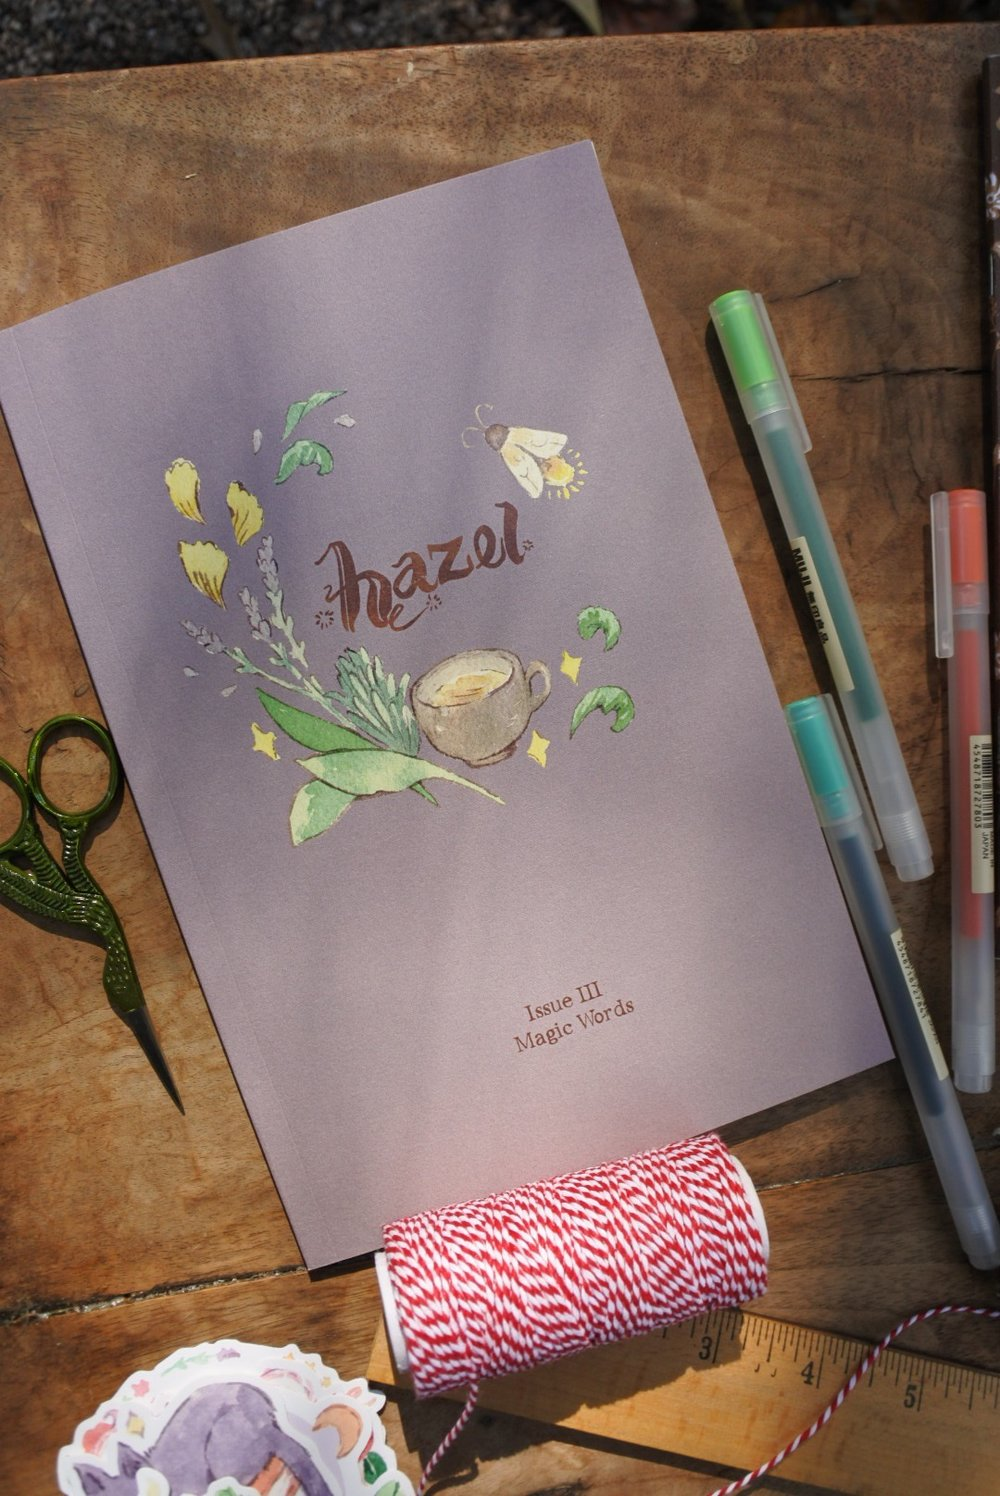 Hazel Issue III: Magic Words